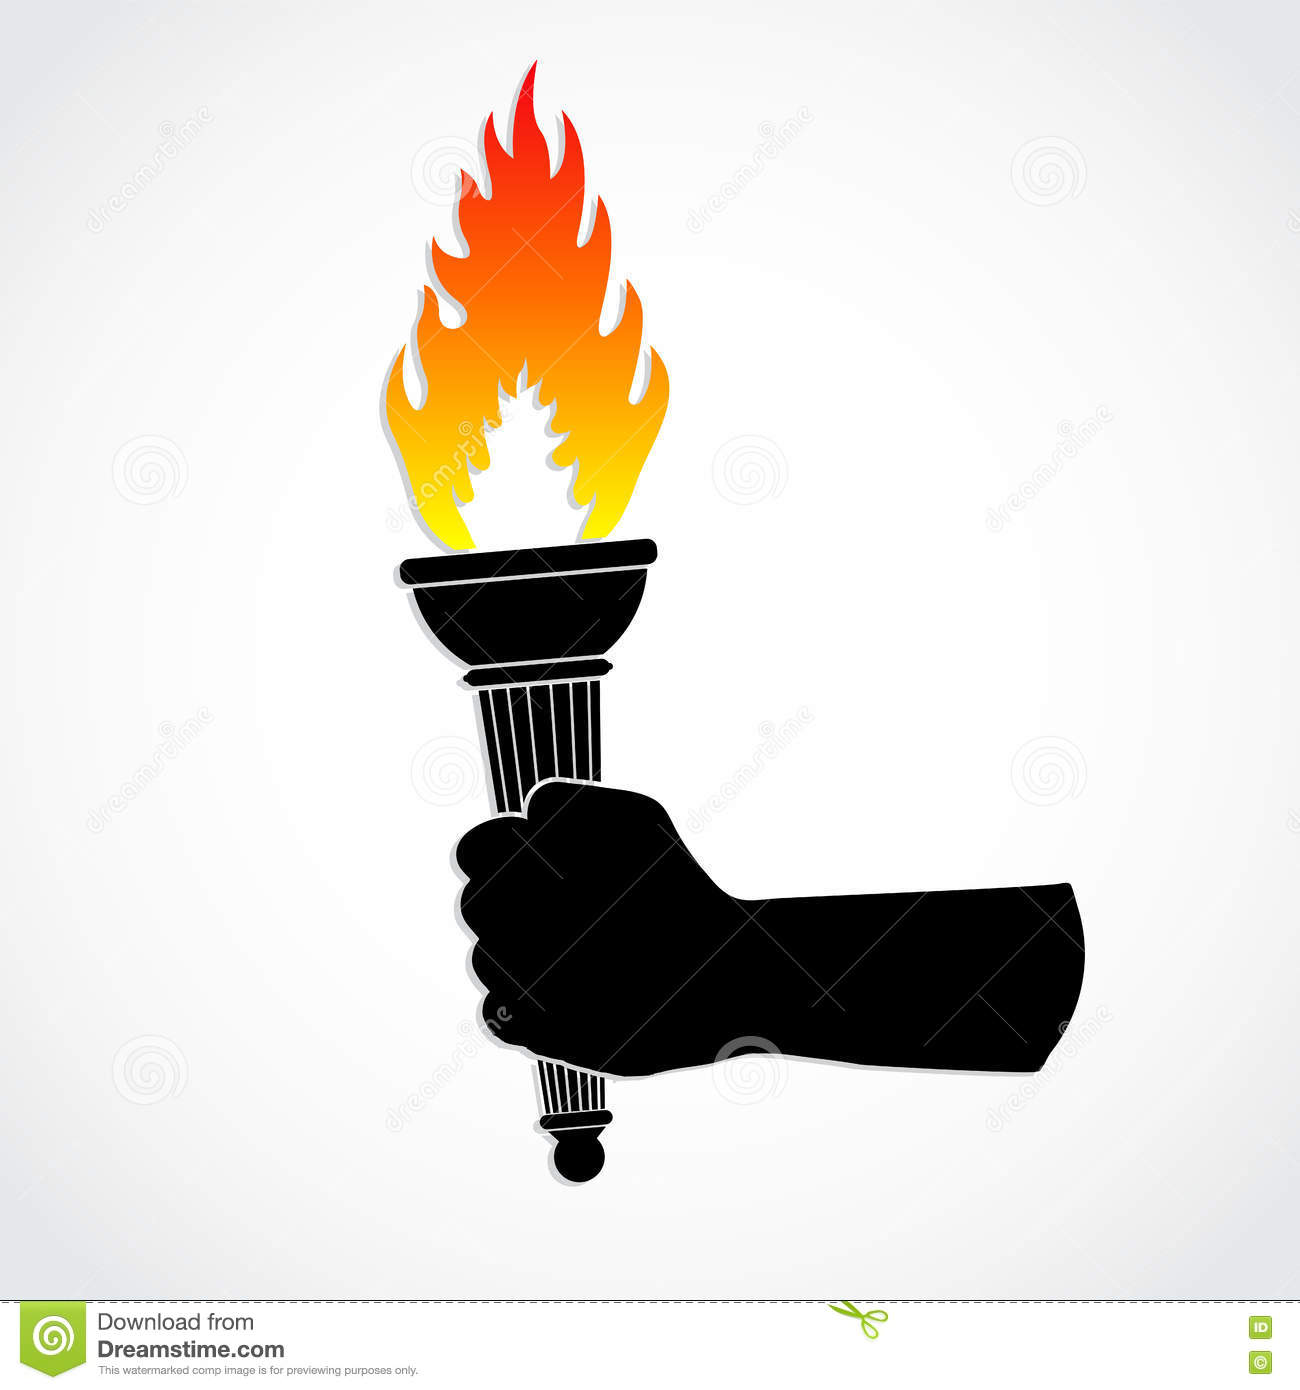 Colof Fite Torch Holding In Silhouette Hand Stock Illustration.